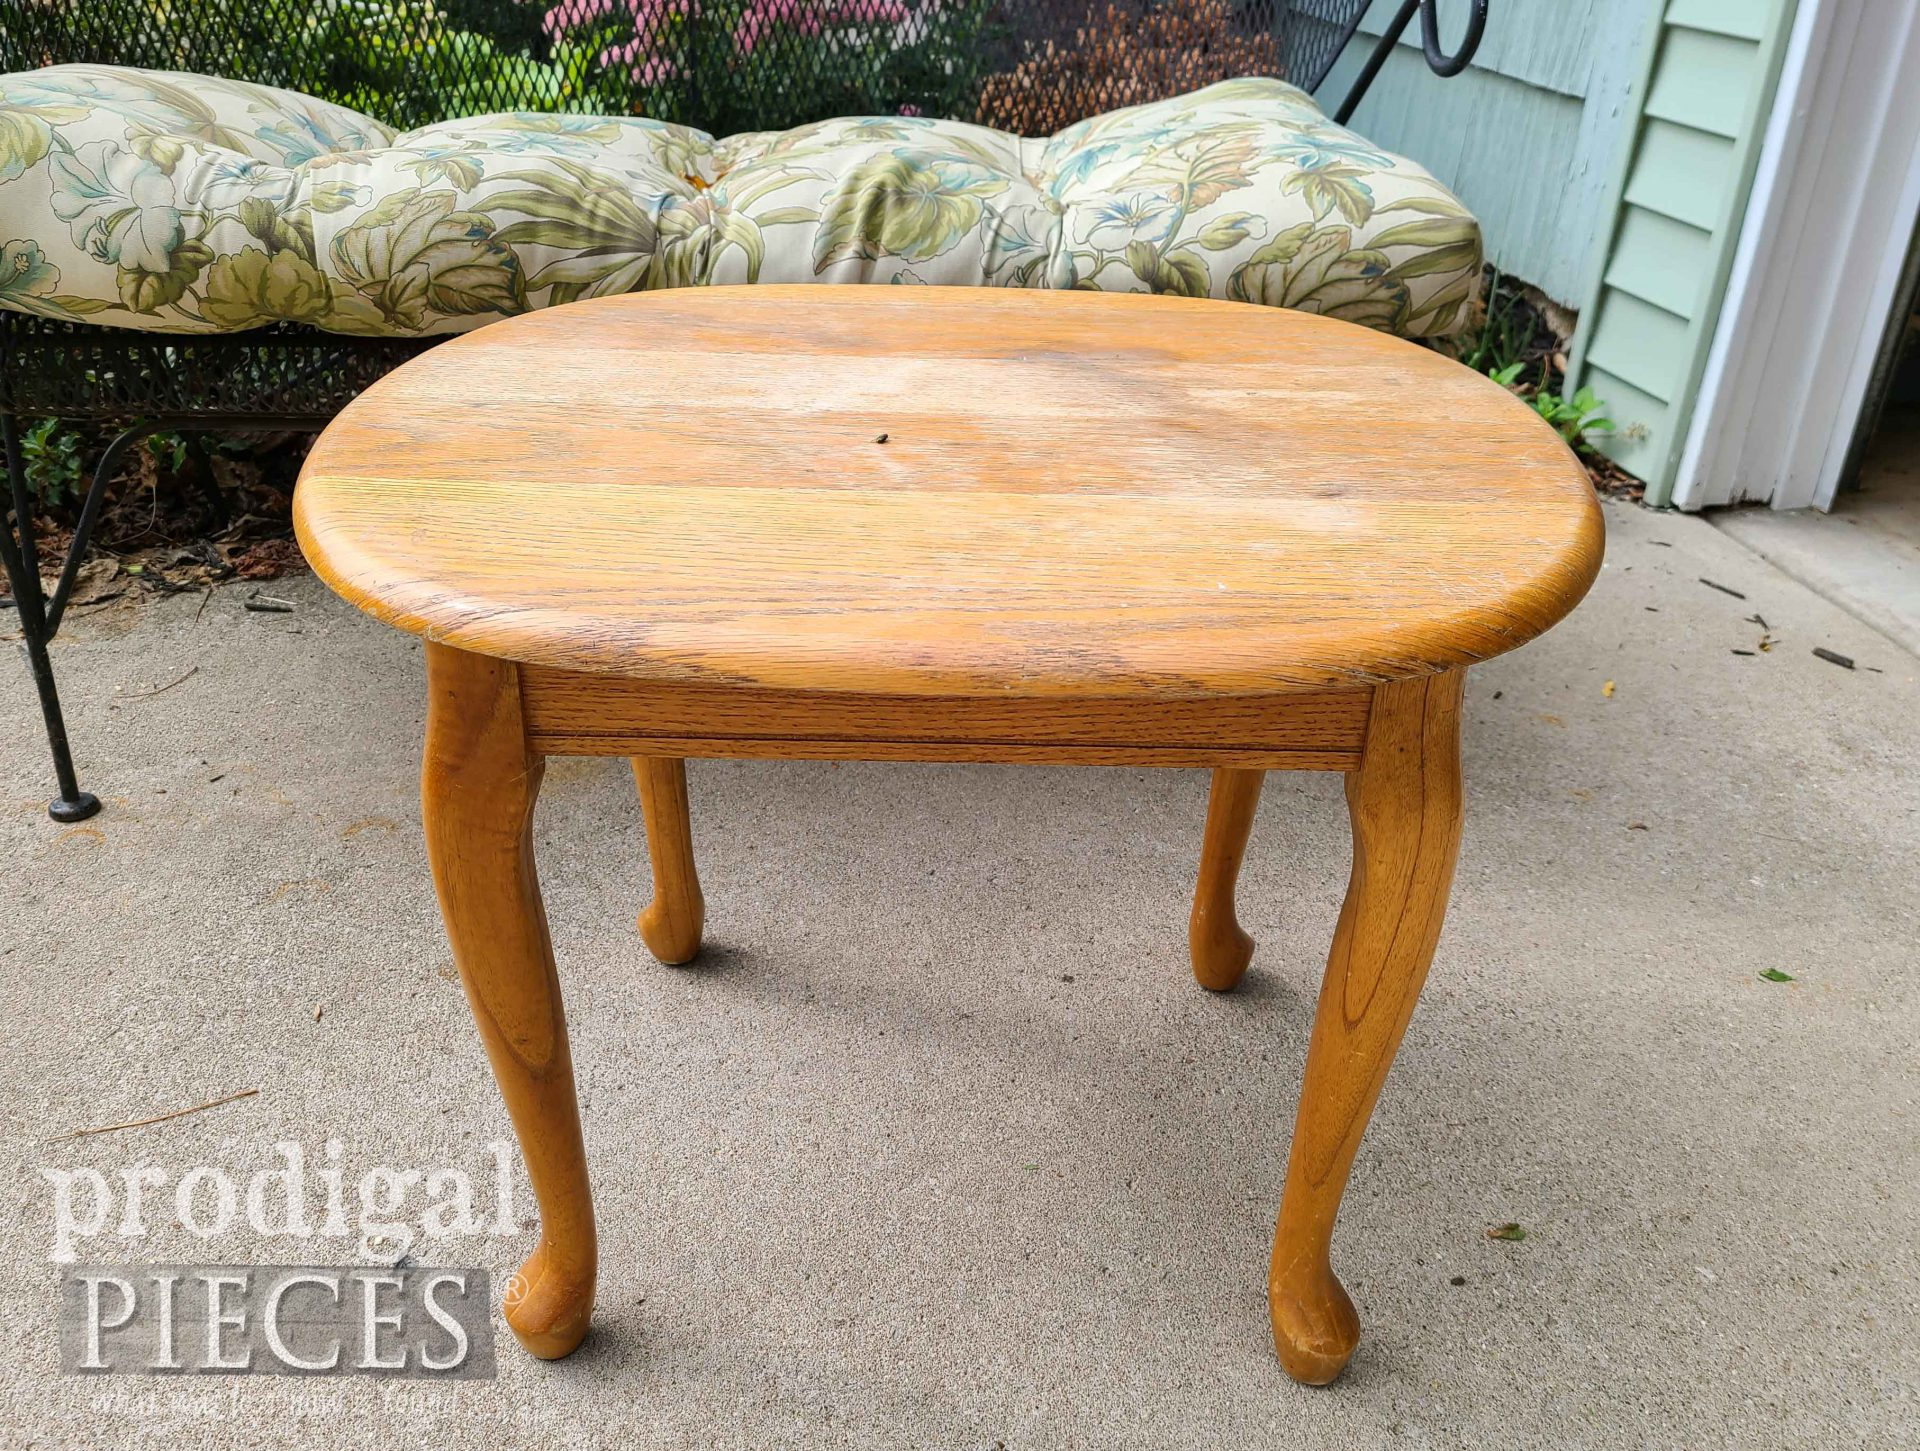 Vintage Oak Table Before Makeover by Prodigal Pieces | prodigalpieces.com